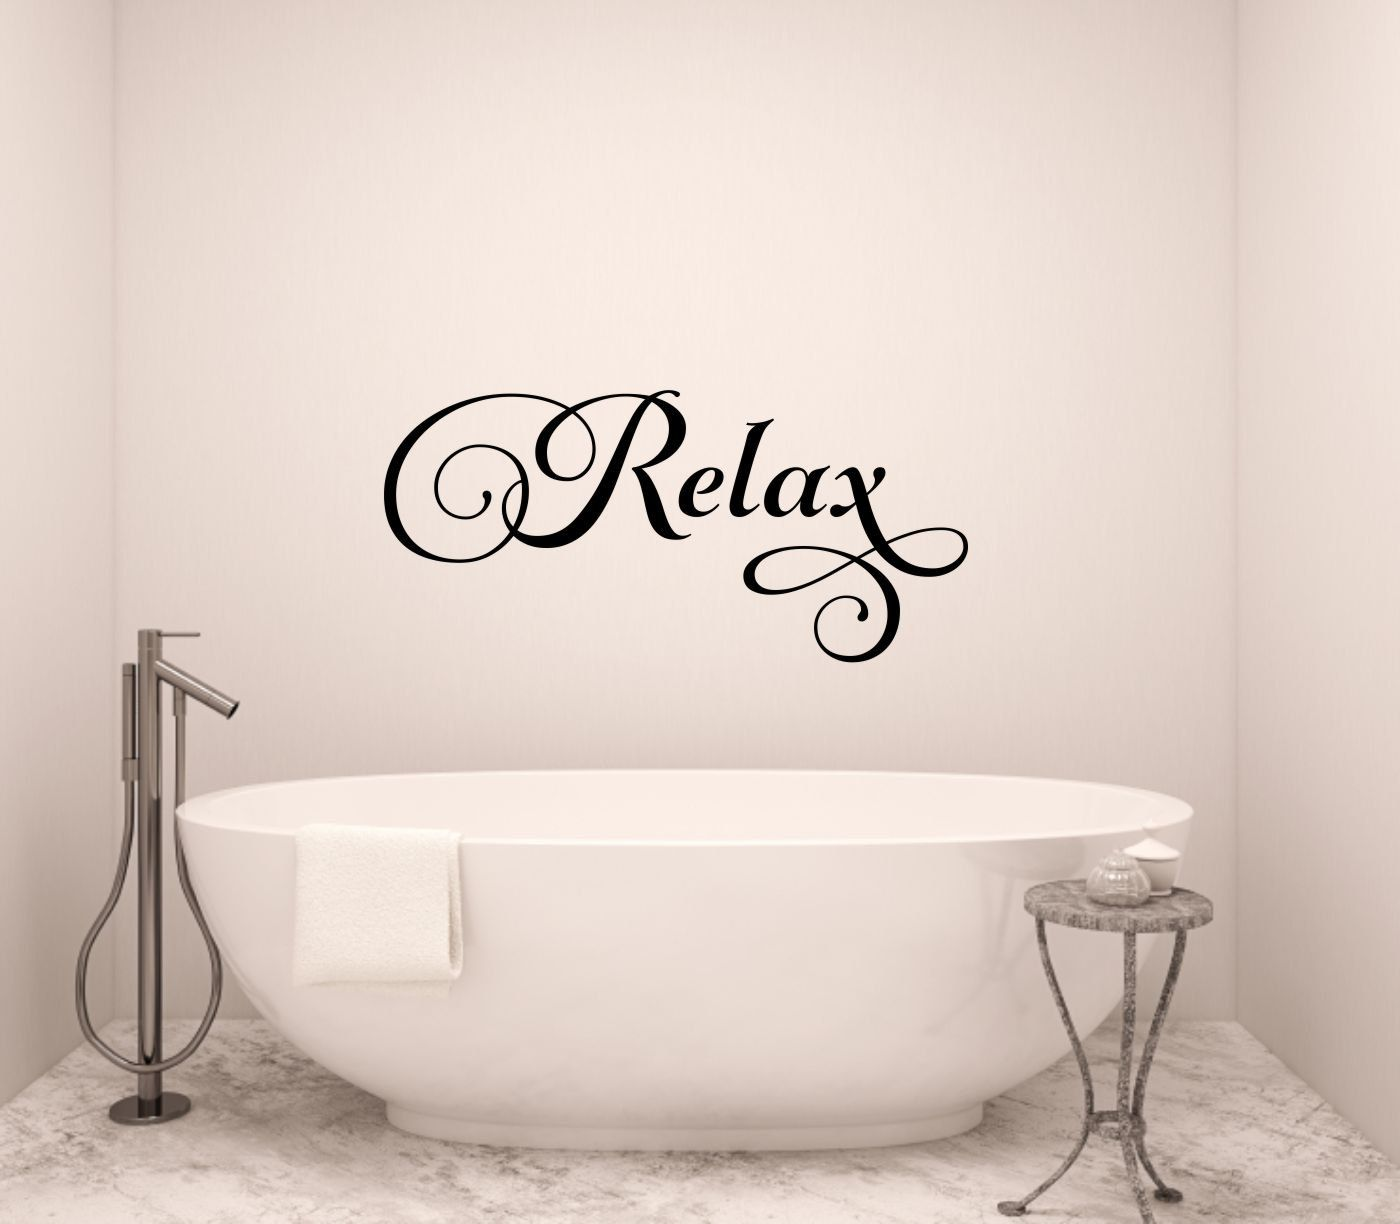 Relax Wall Decal Bathroom Wall Decal Bathroom Vinyl Decal